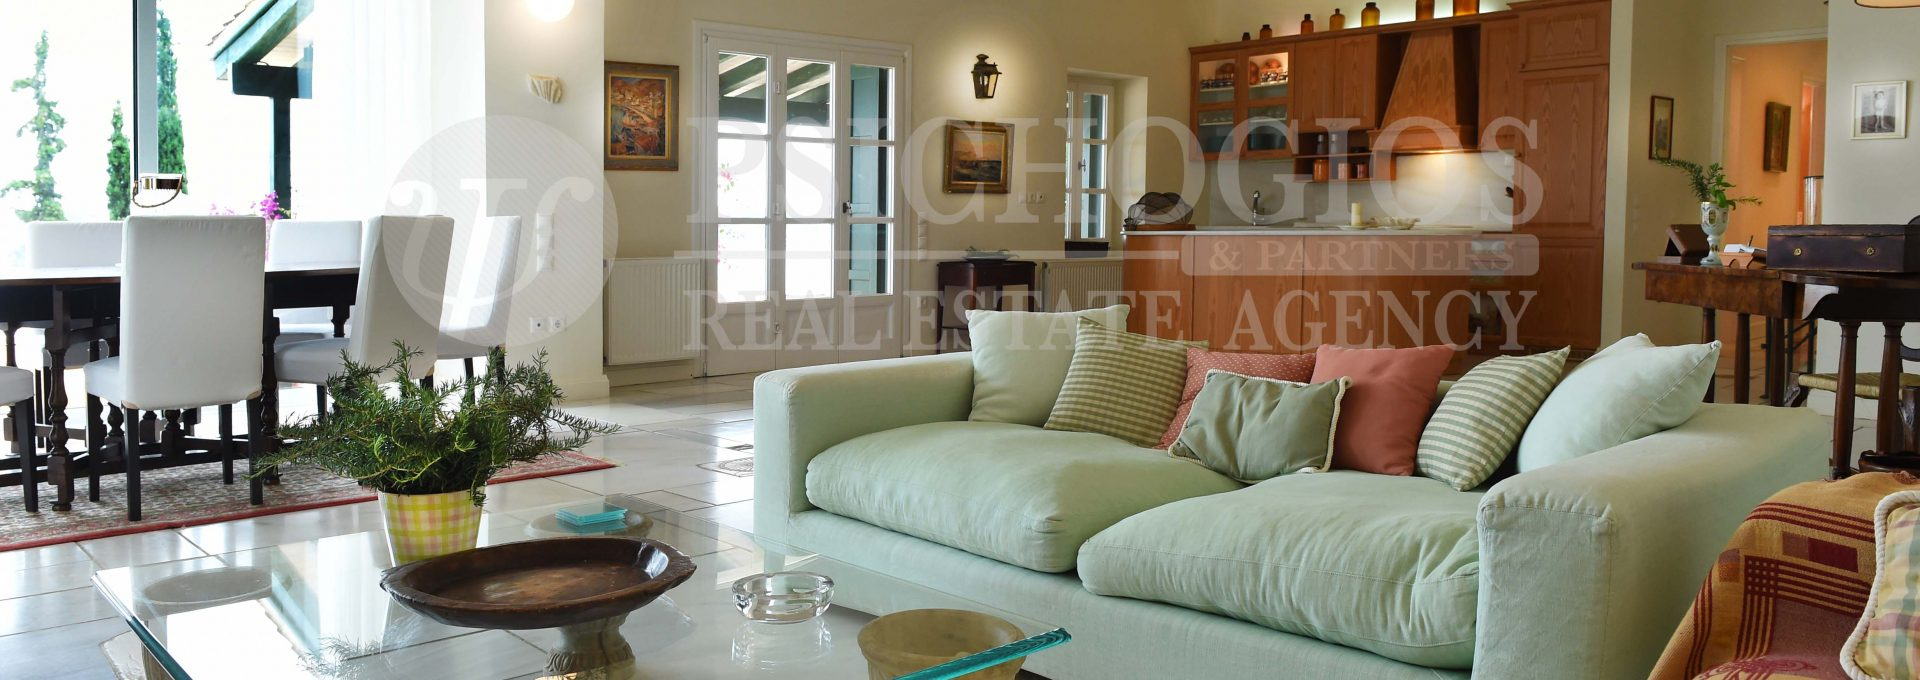 for_rent_house_600_square_meters_sea_view_porto_heli_greece (120)